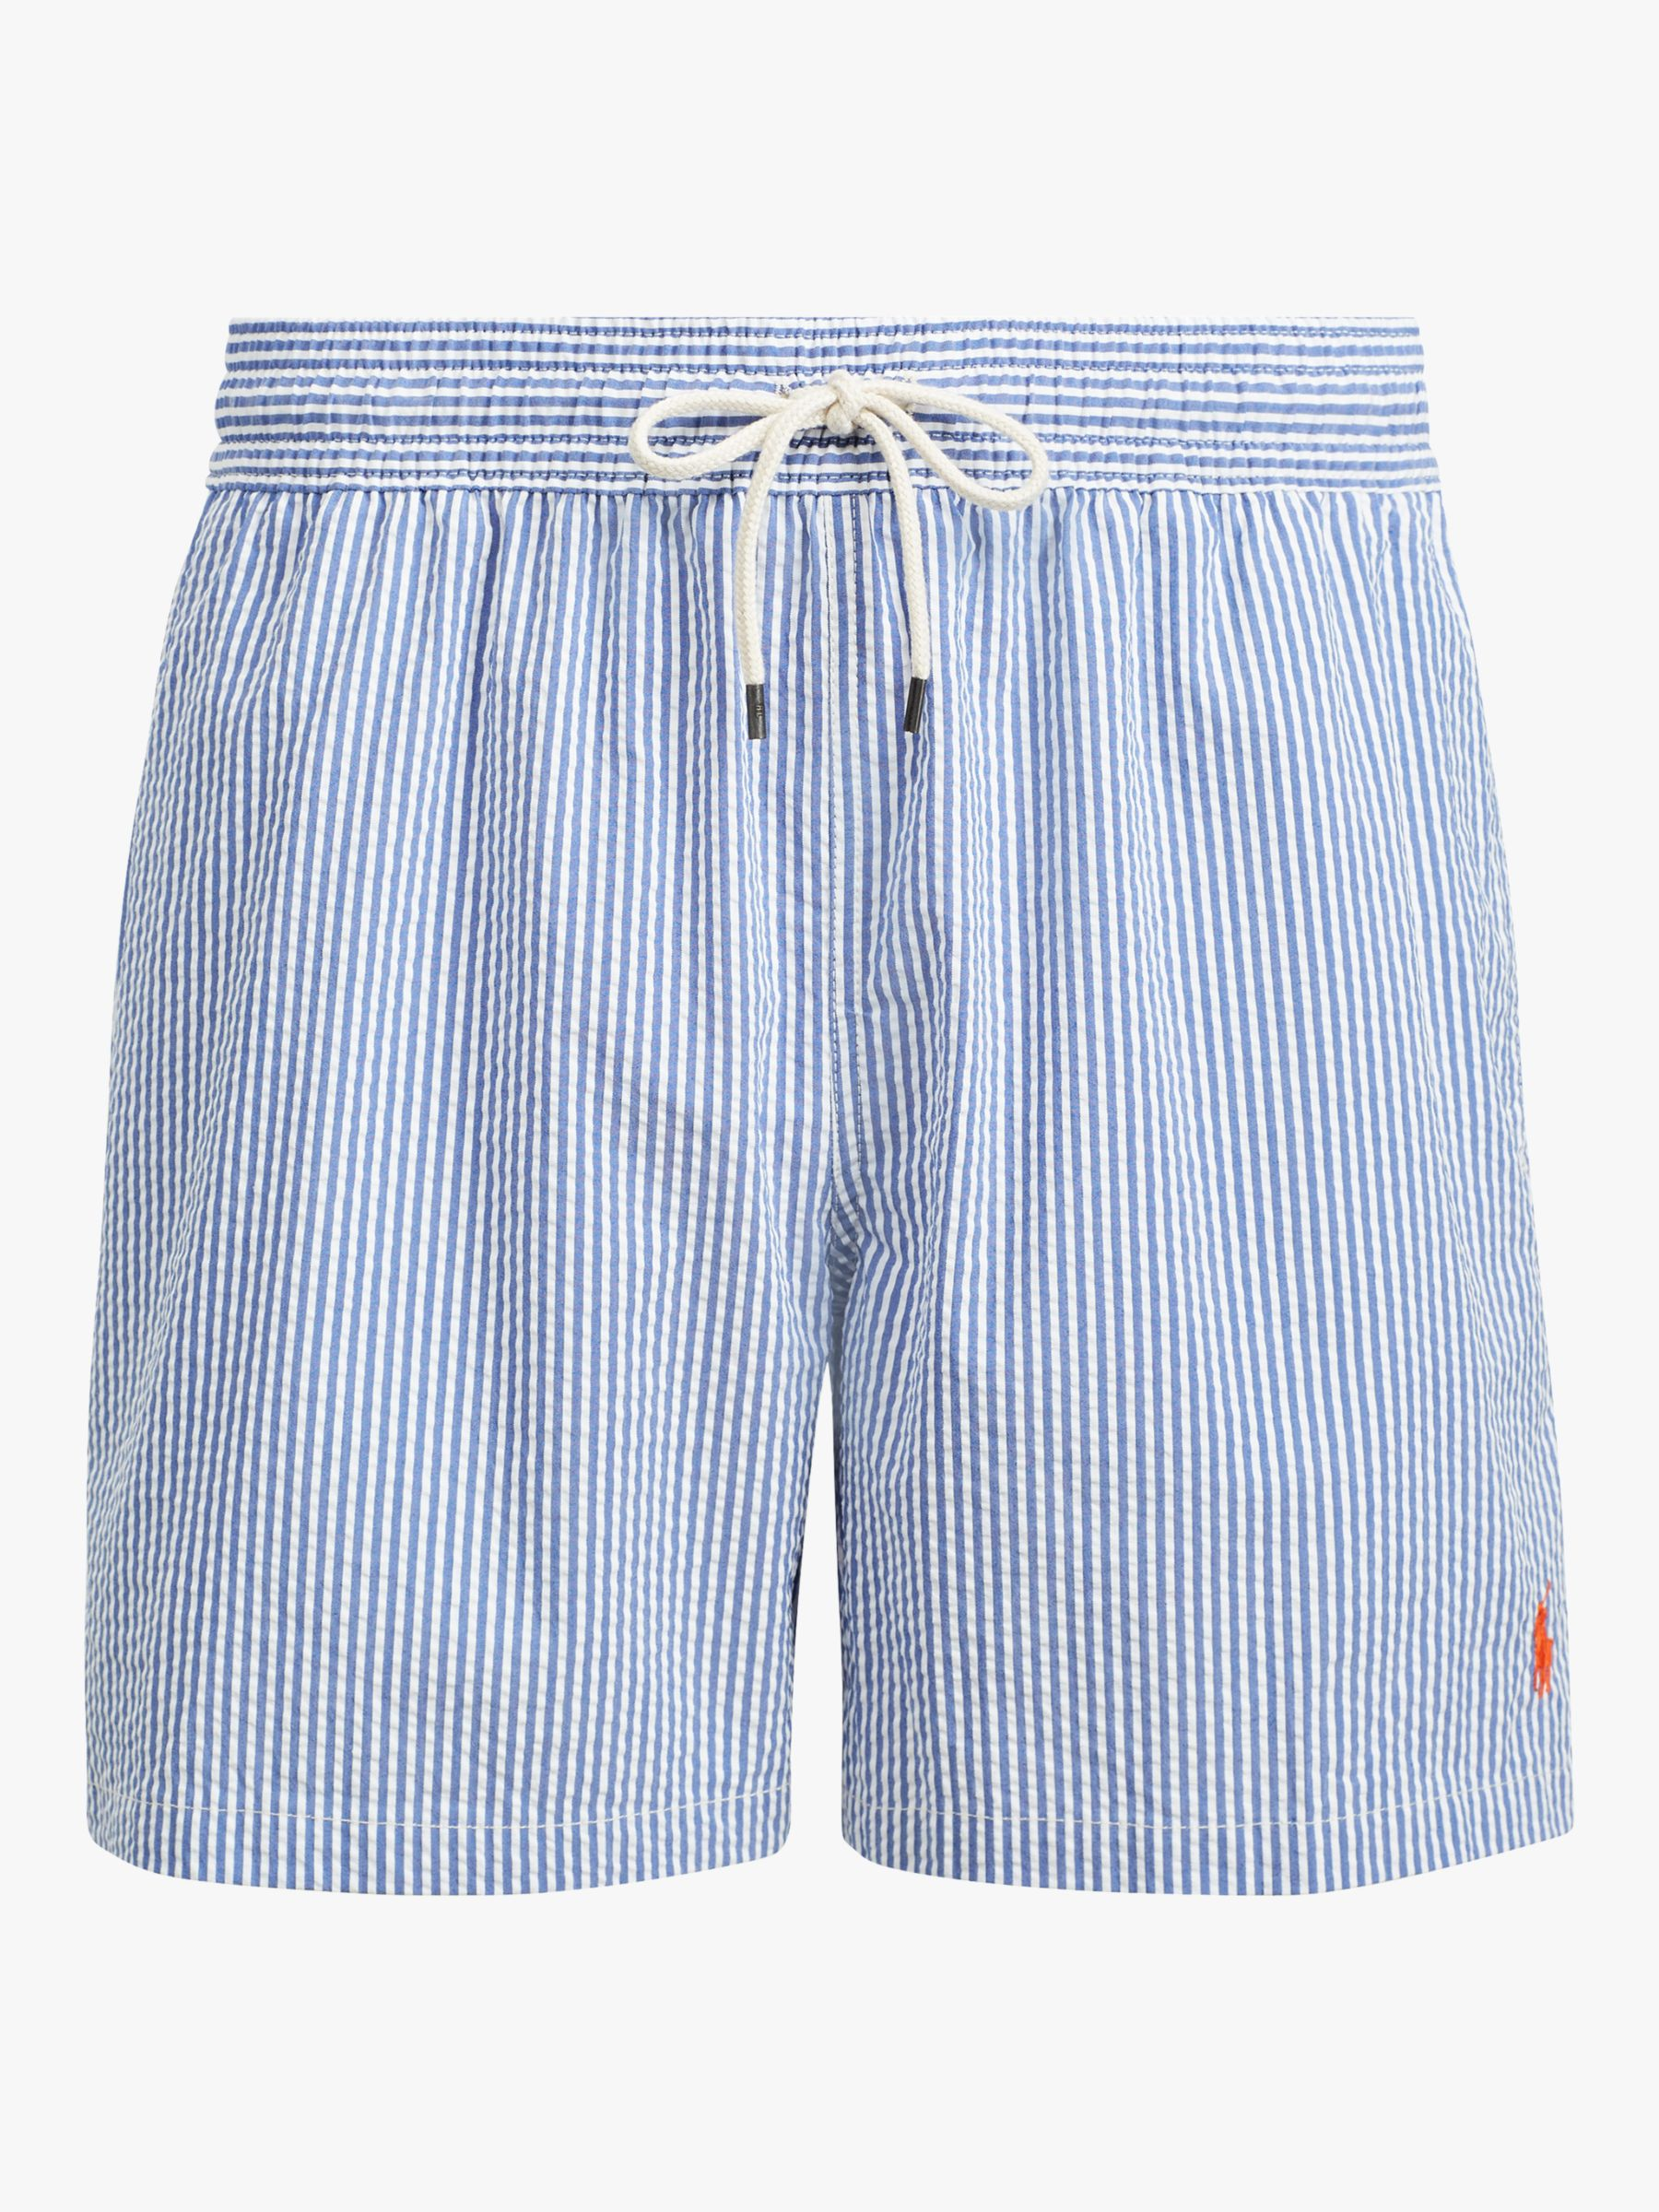 Ralph Lauren Polo Ralph Lauren Seersucker Stripe Swim Shorts, Blue